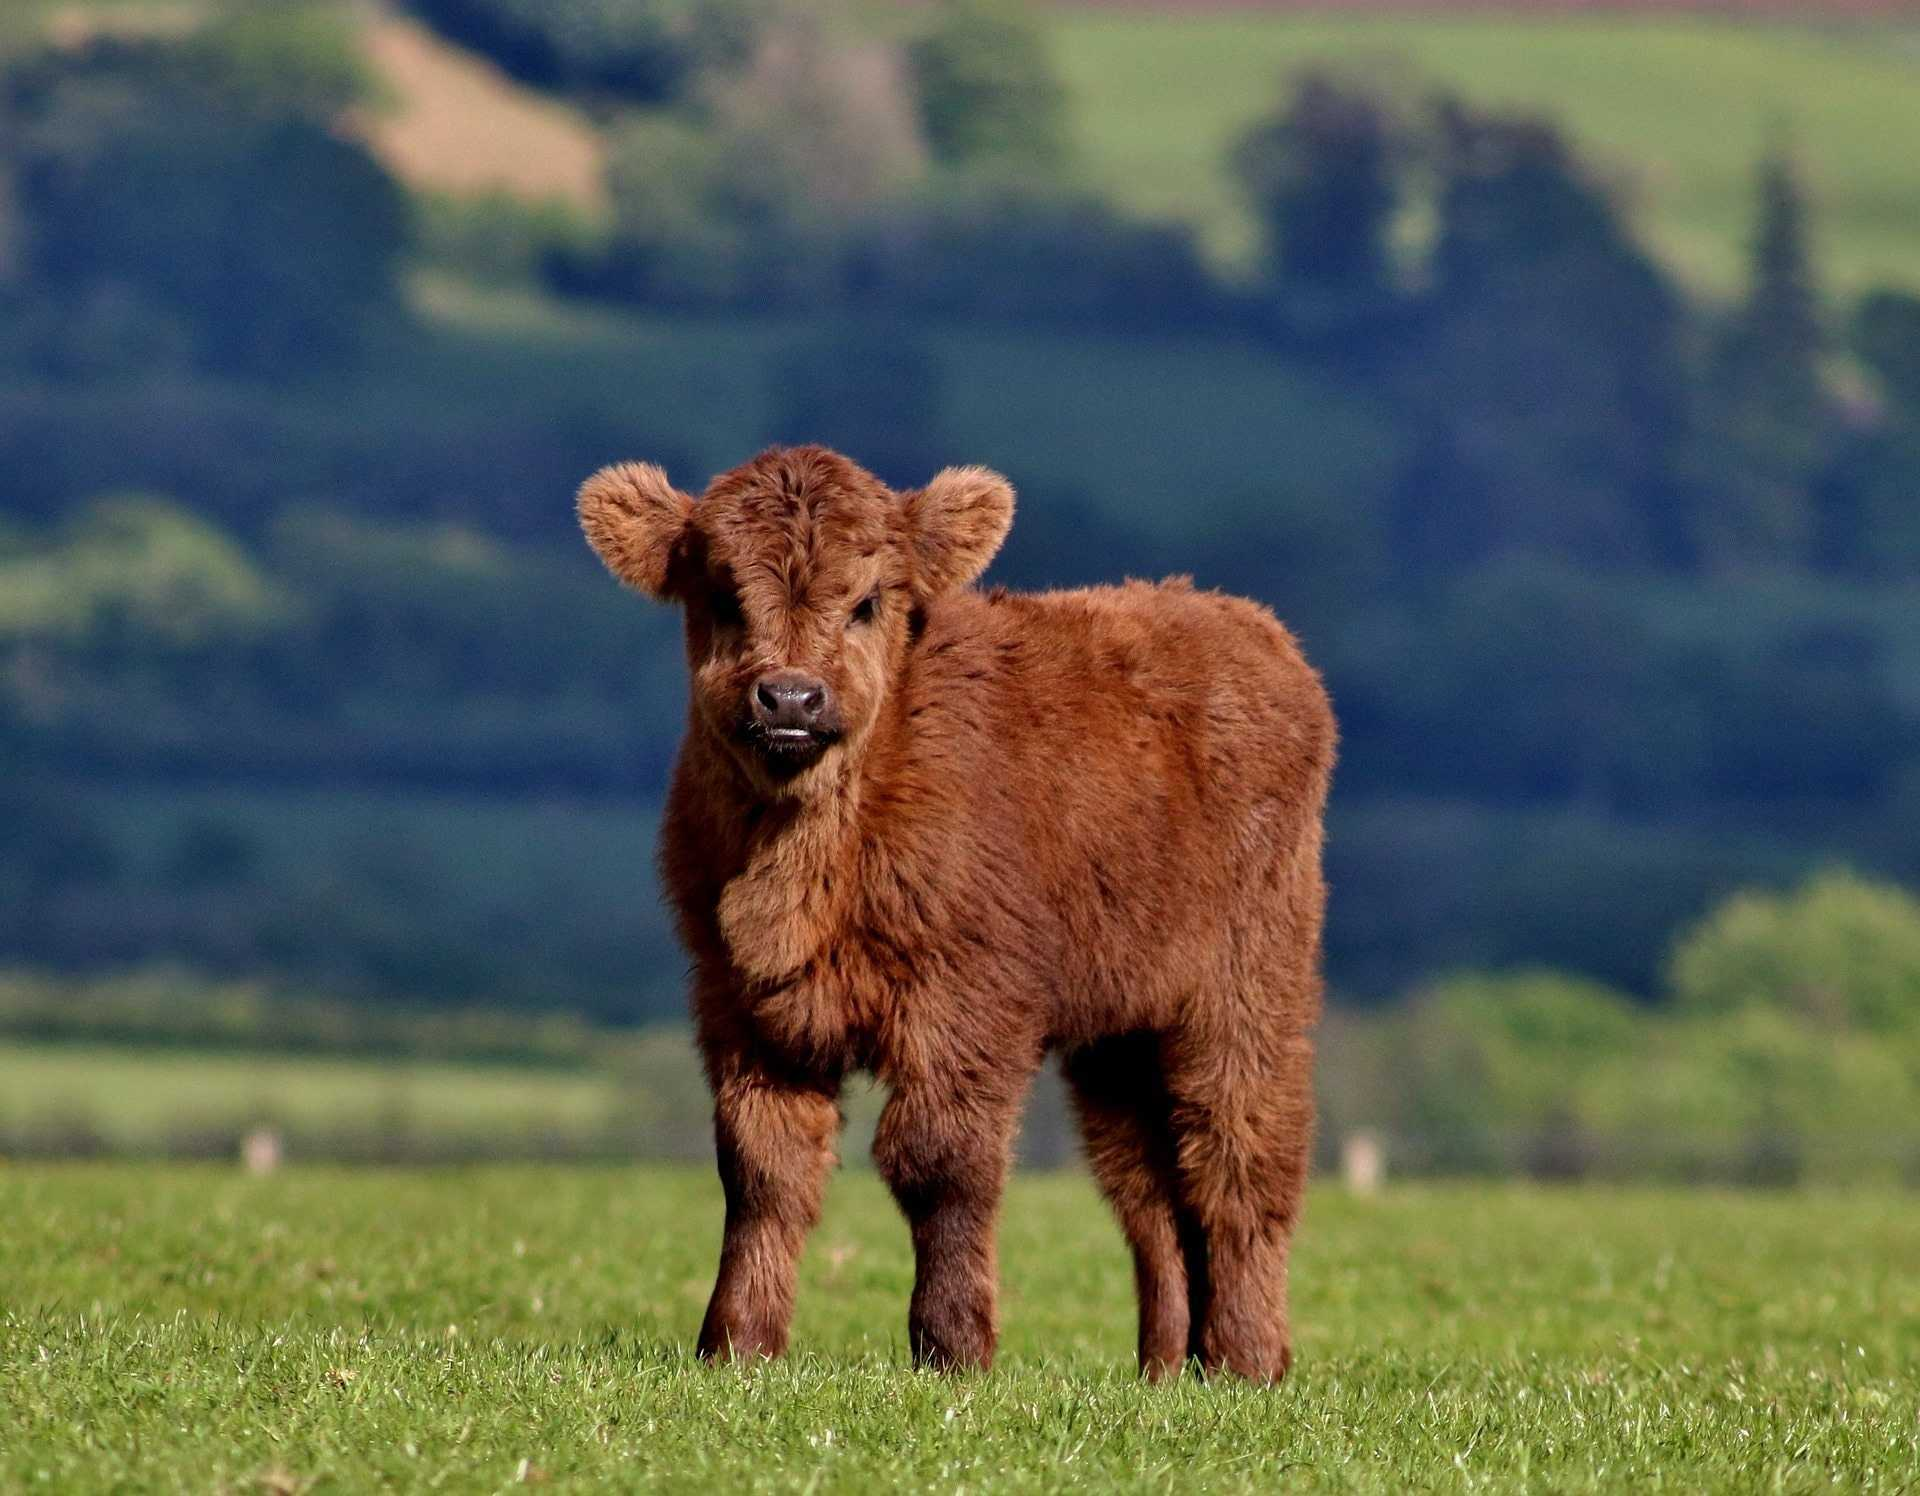 Highland Cow Wallpaper 1